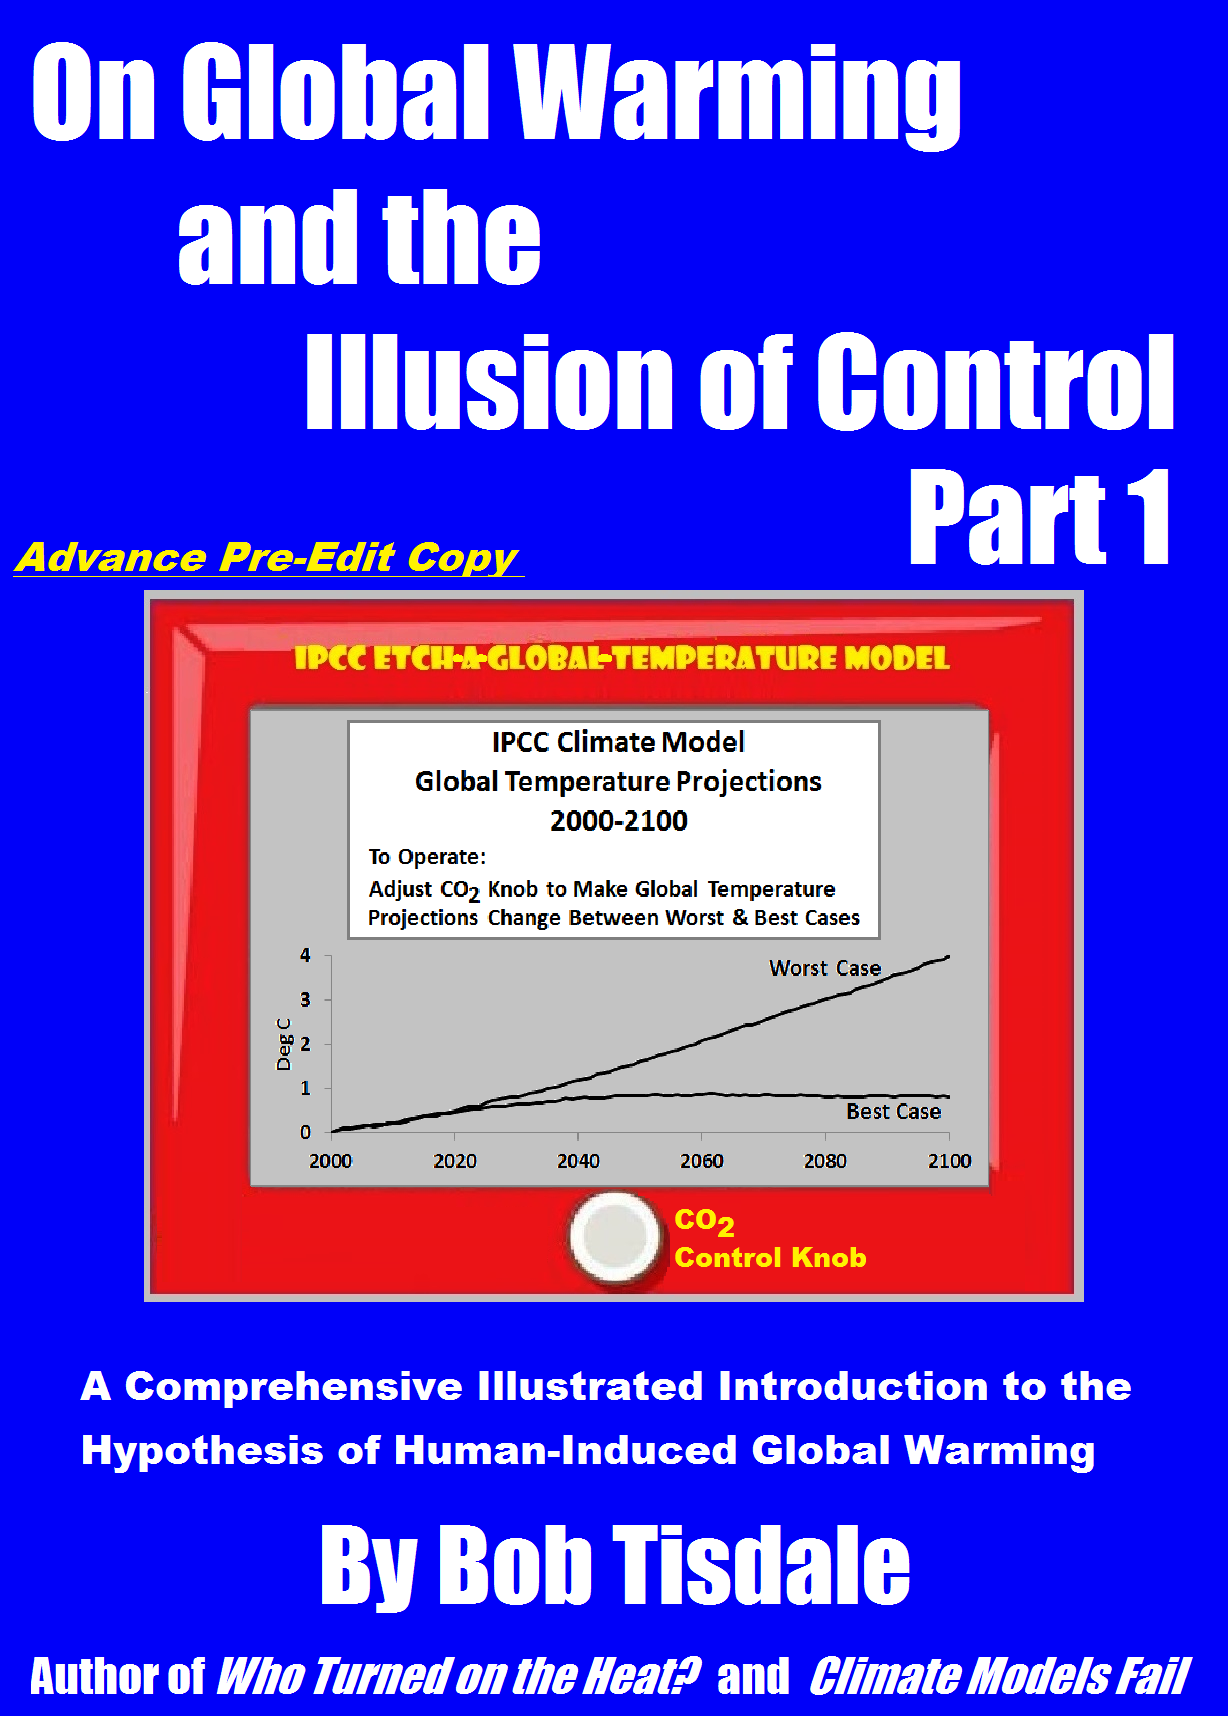 New book by bob tisdale on global warming and the illusion of new book by bob tisdale on global warming and the illusion of control part 1 fandeluxe Choice Image